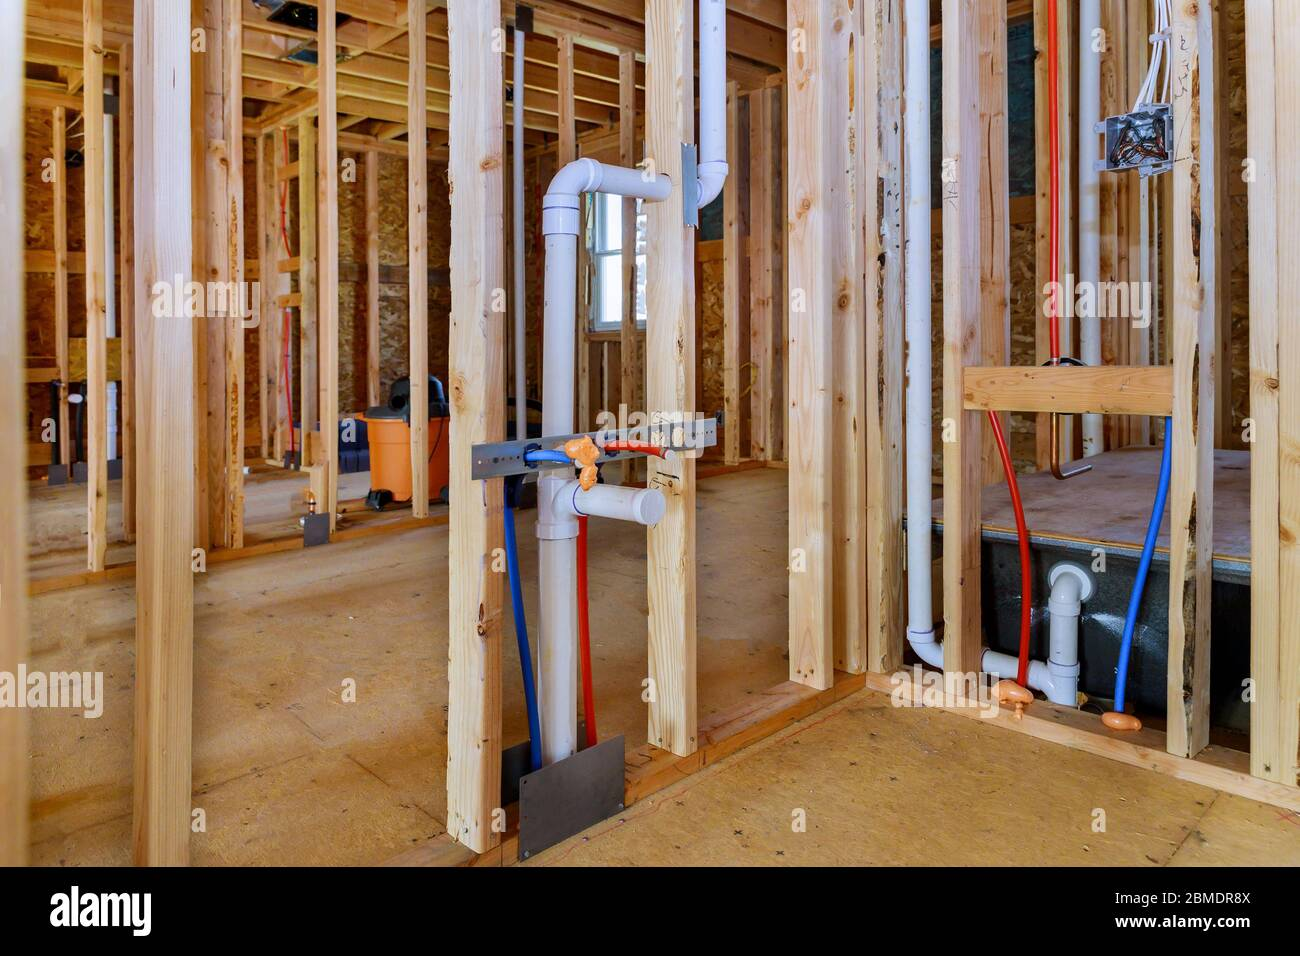 Pex Pipe Installation High Resolution Stock Photography And Images Alamy